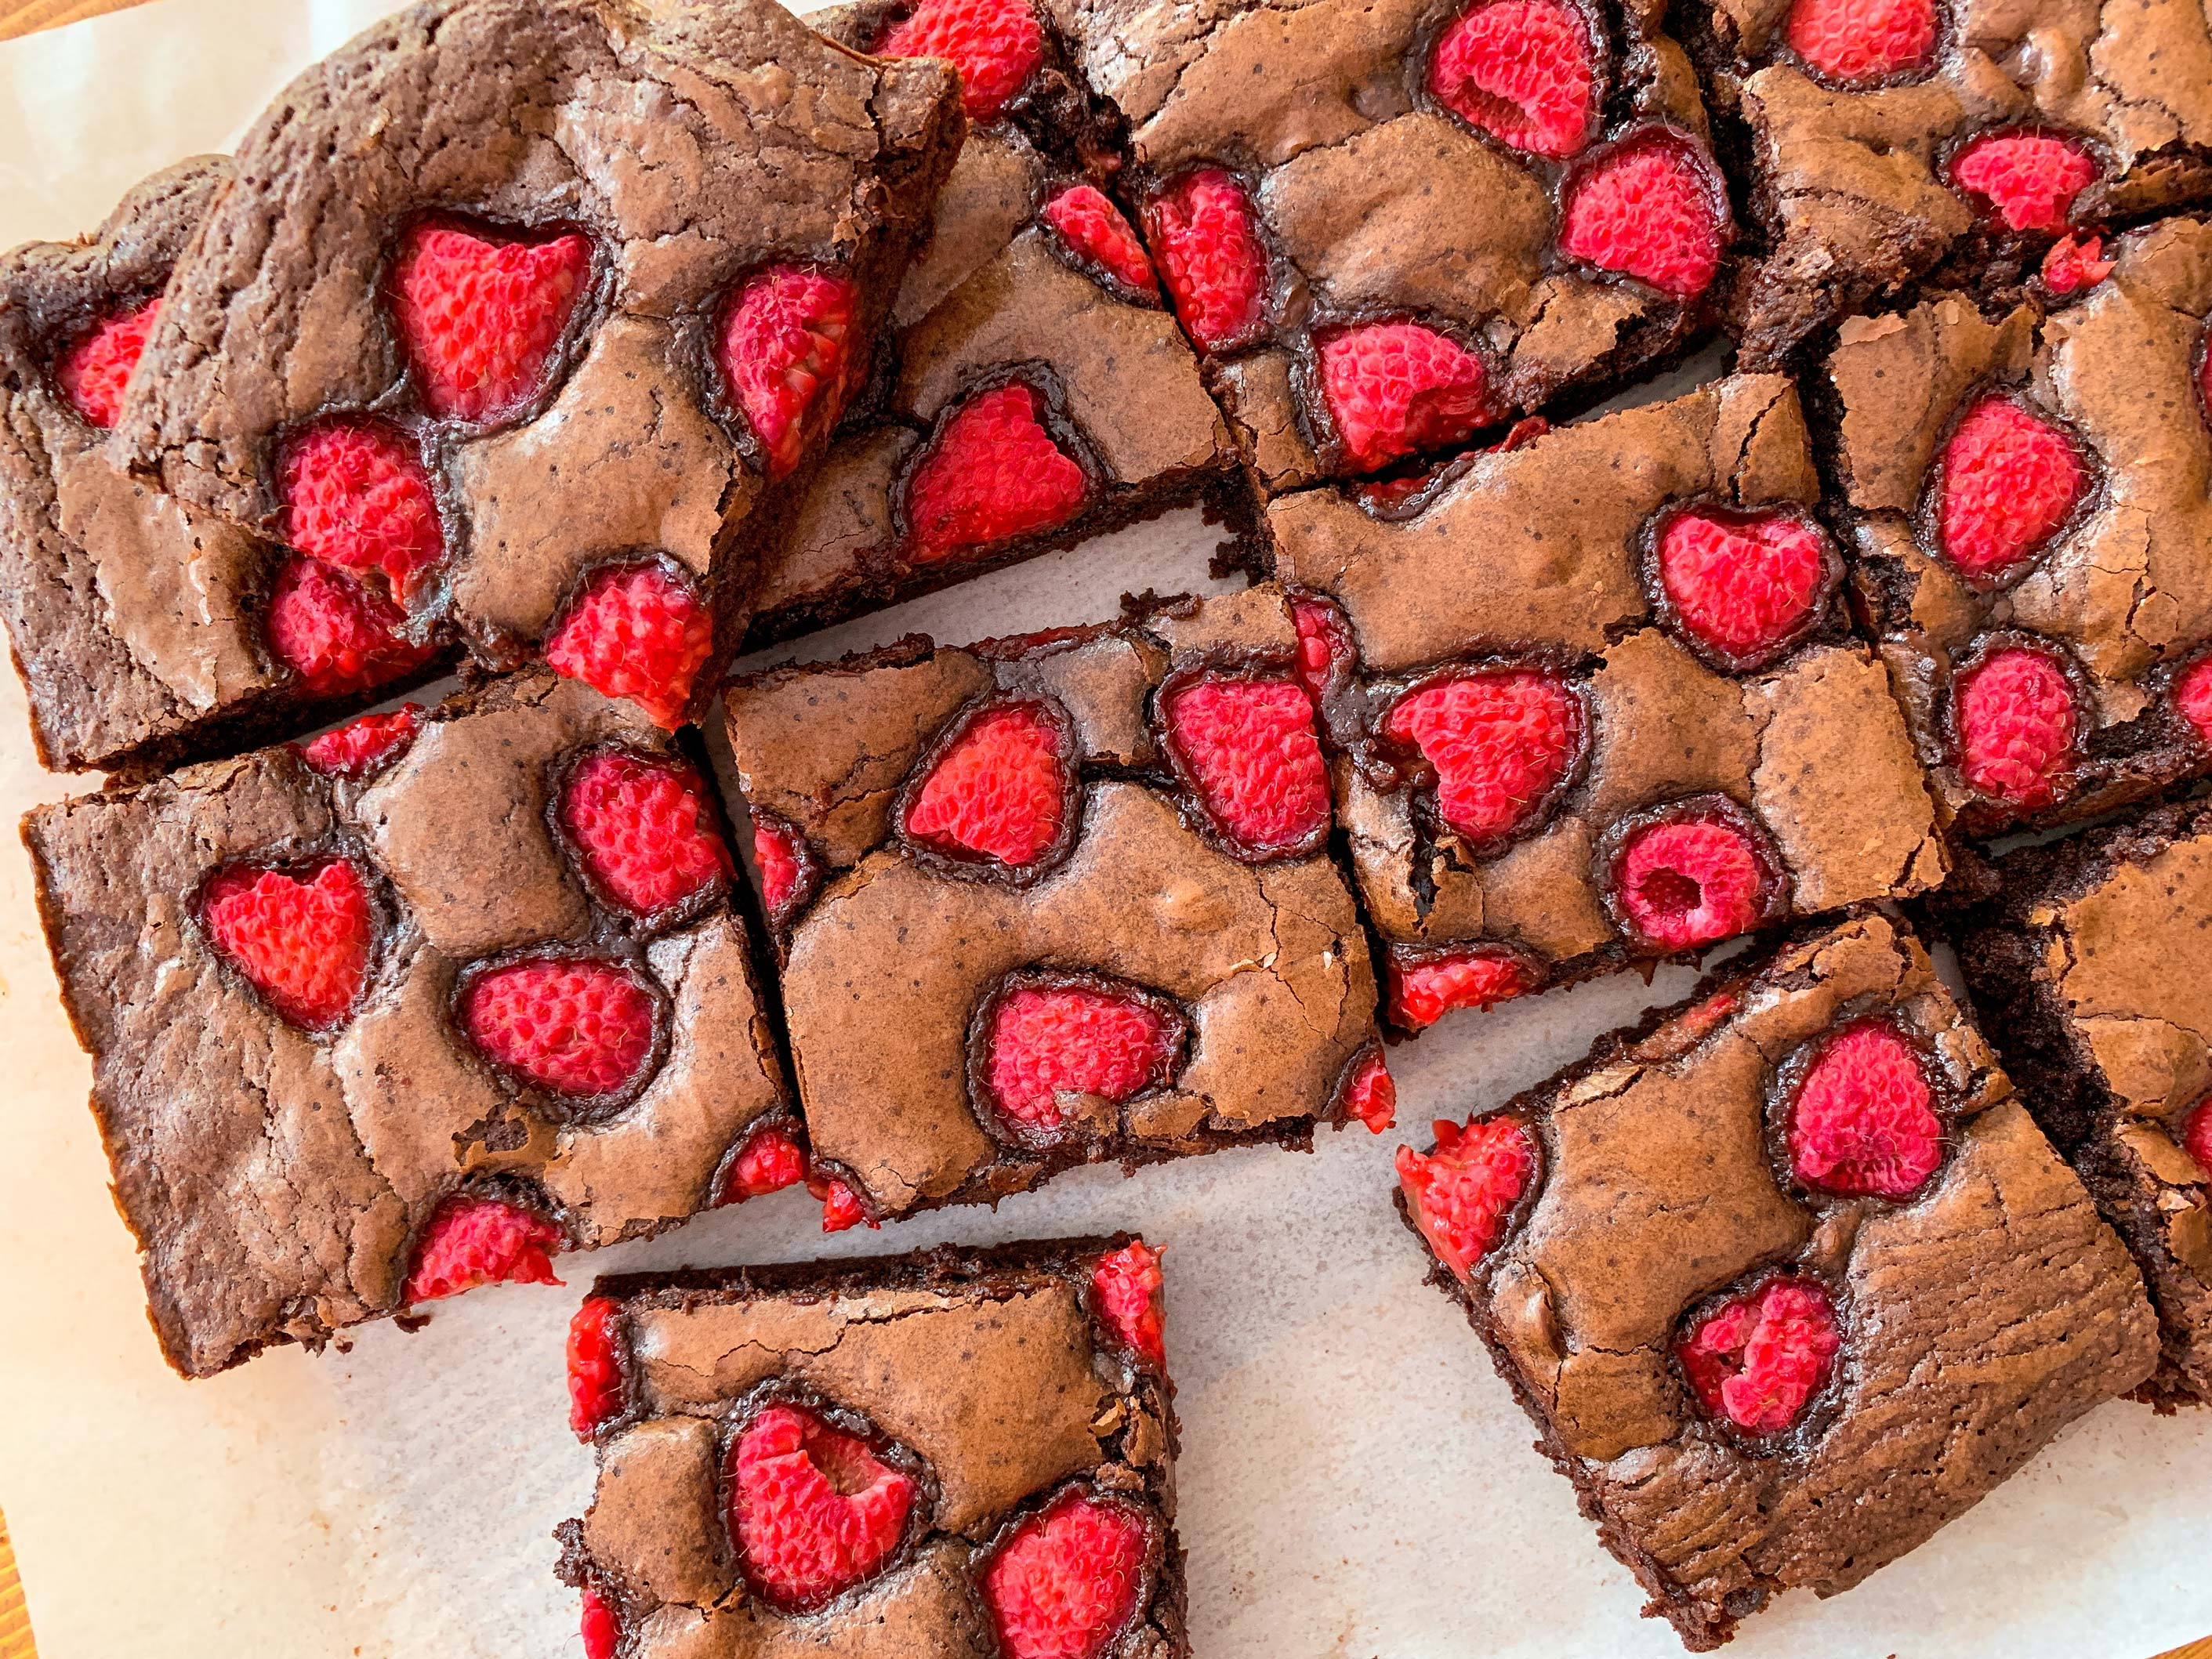 Raspberry chocolate brownies cut into squares